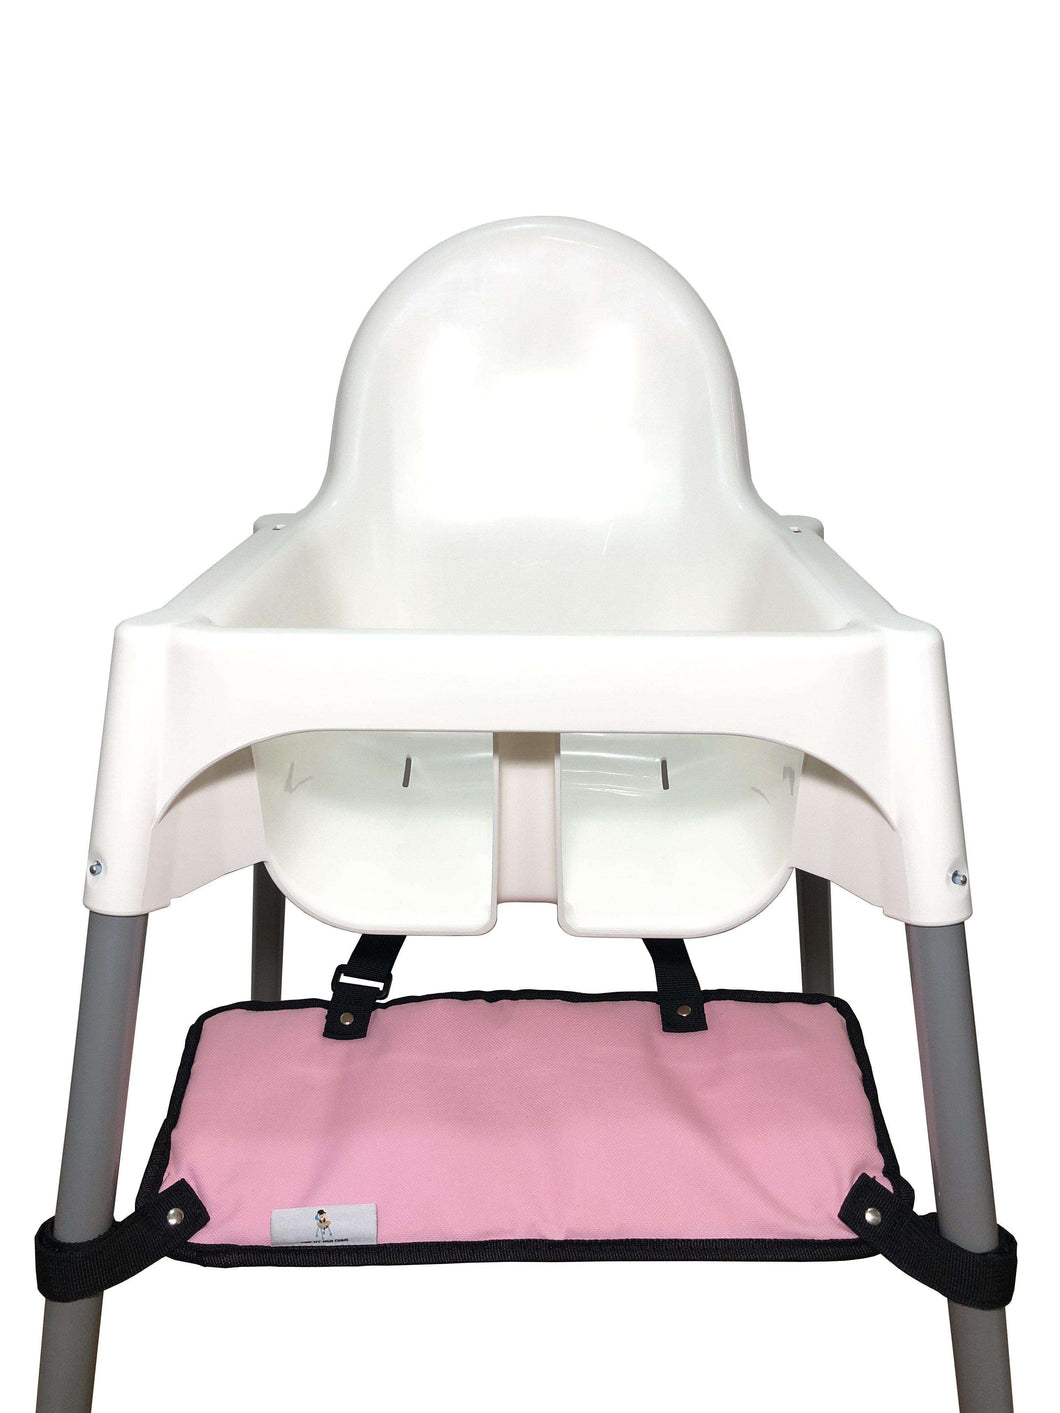 Footsi High Chair Footrest - Pink - mytinyfingers baby products